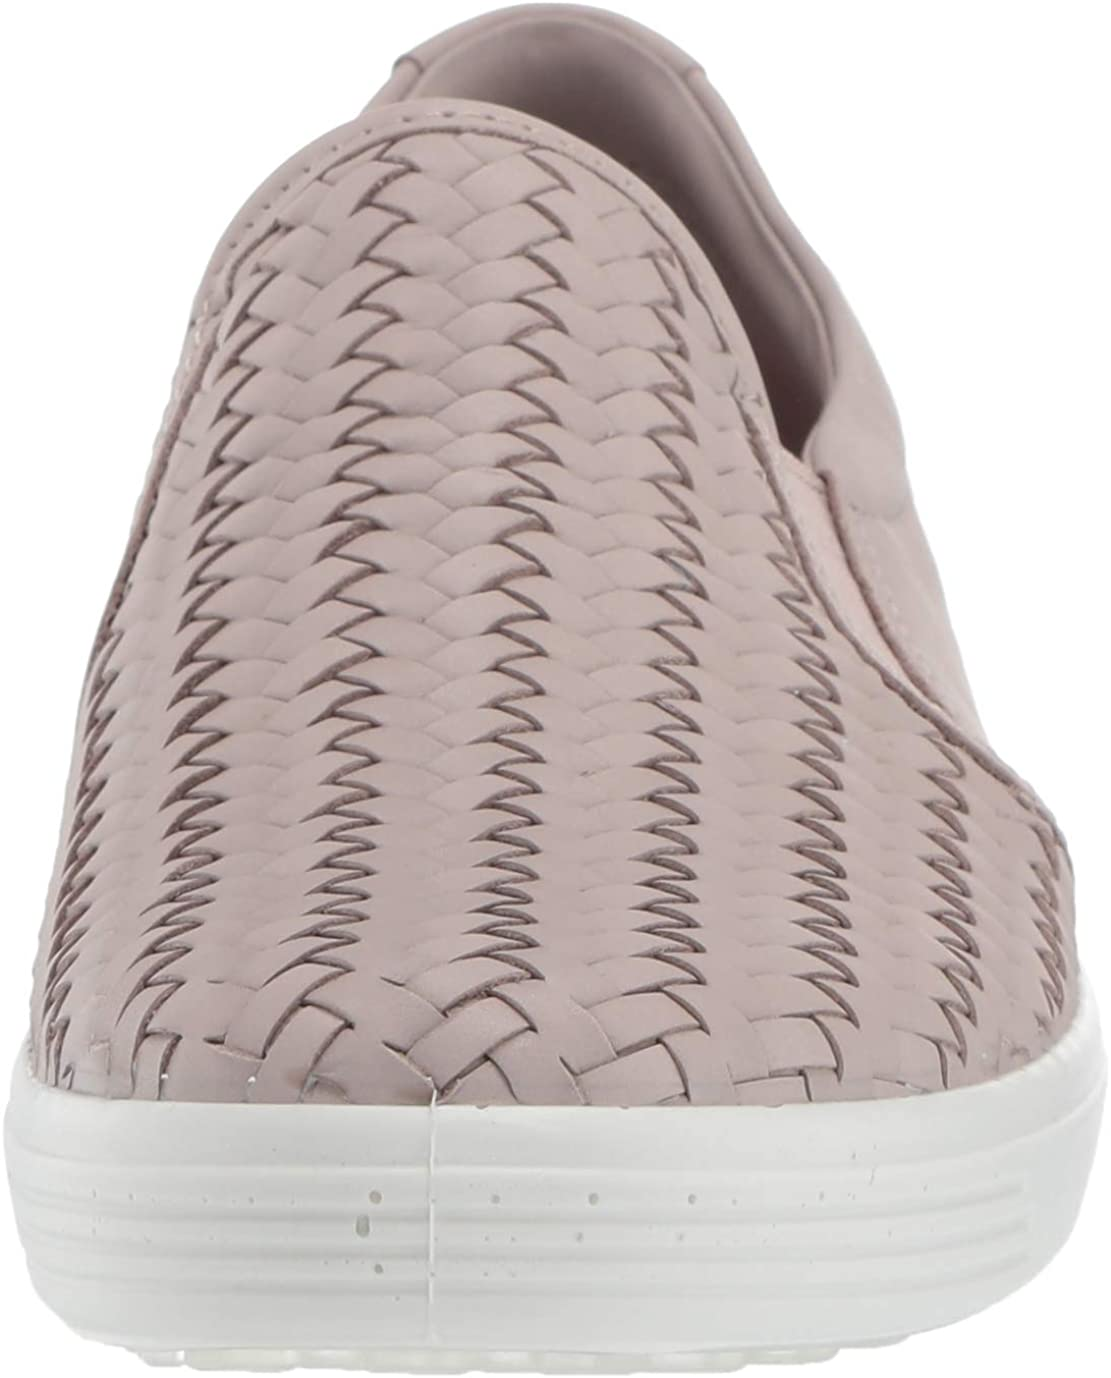 ECCO Soft7w, Slip-on Sneaker Donna Rosa Grigia